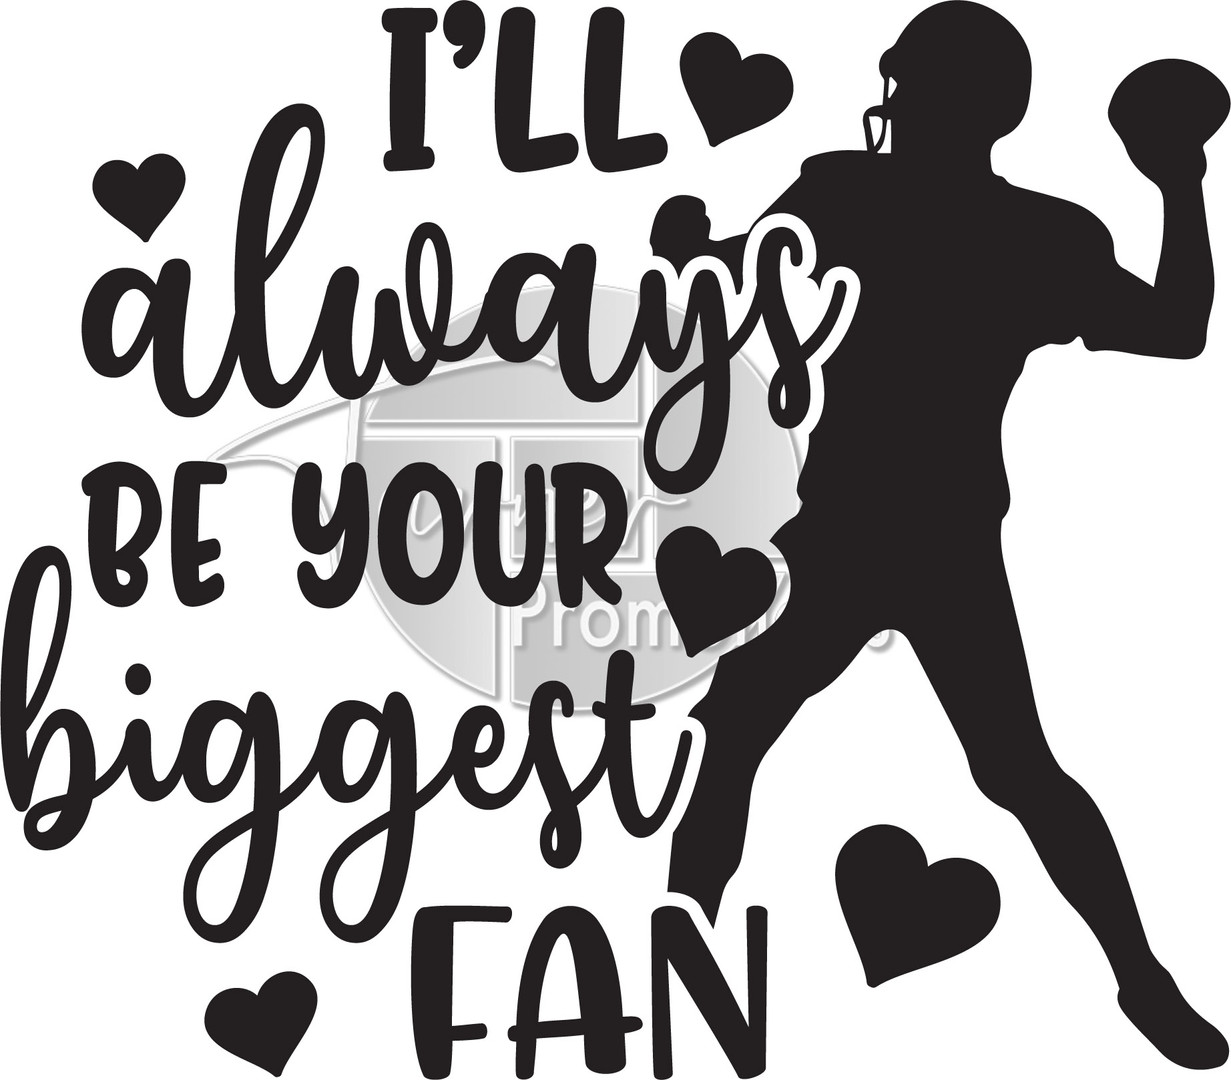 I ll always be your biggest fan football